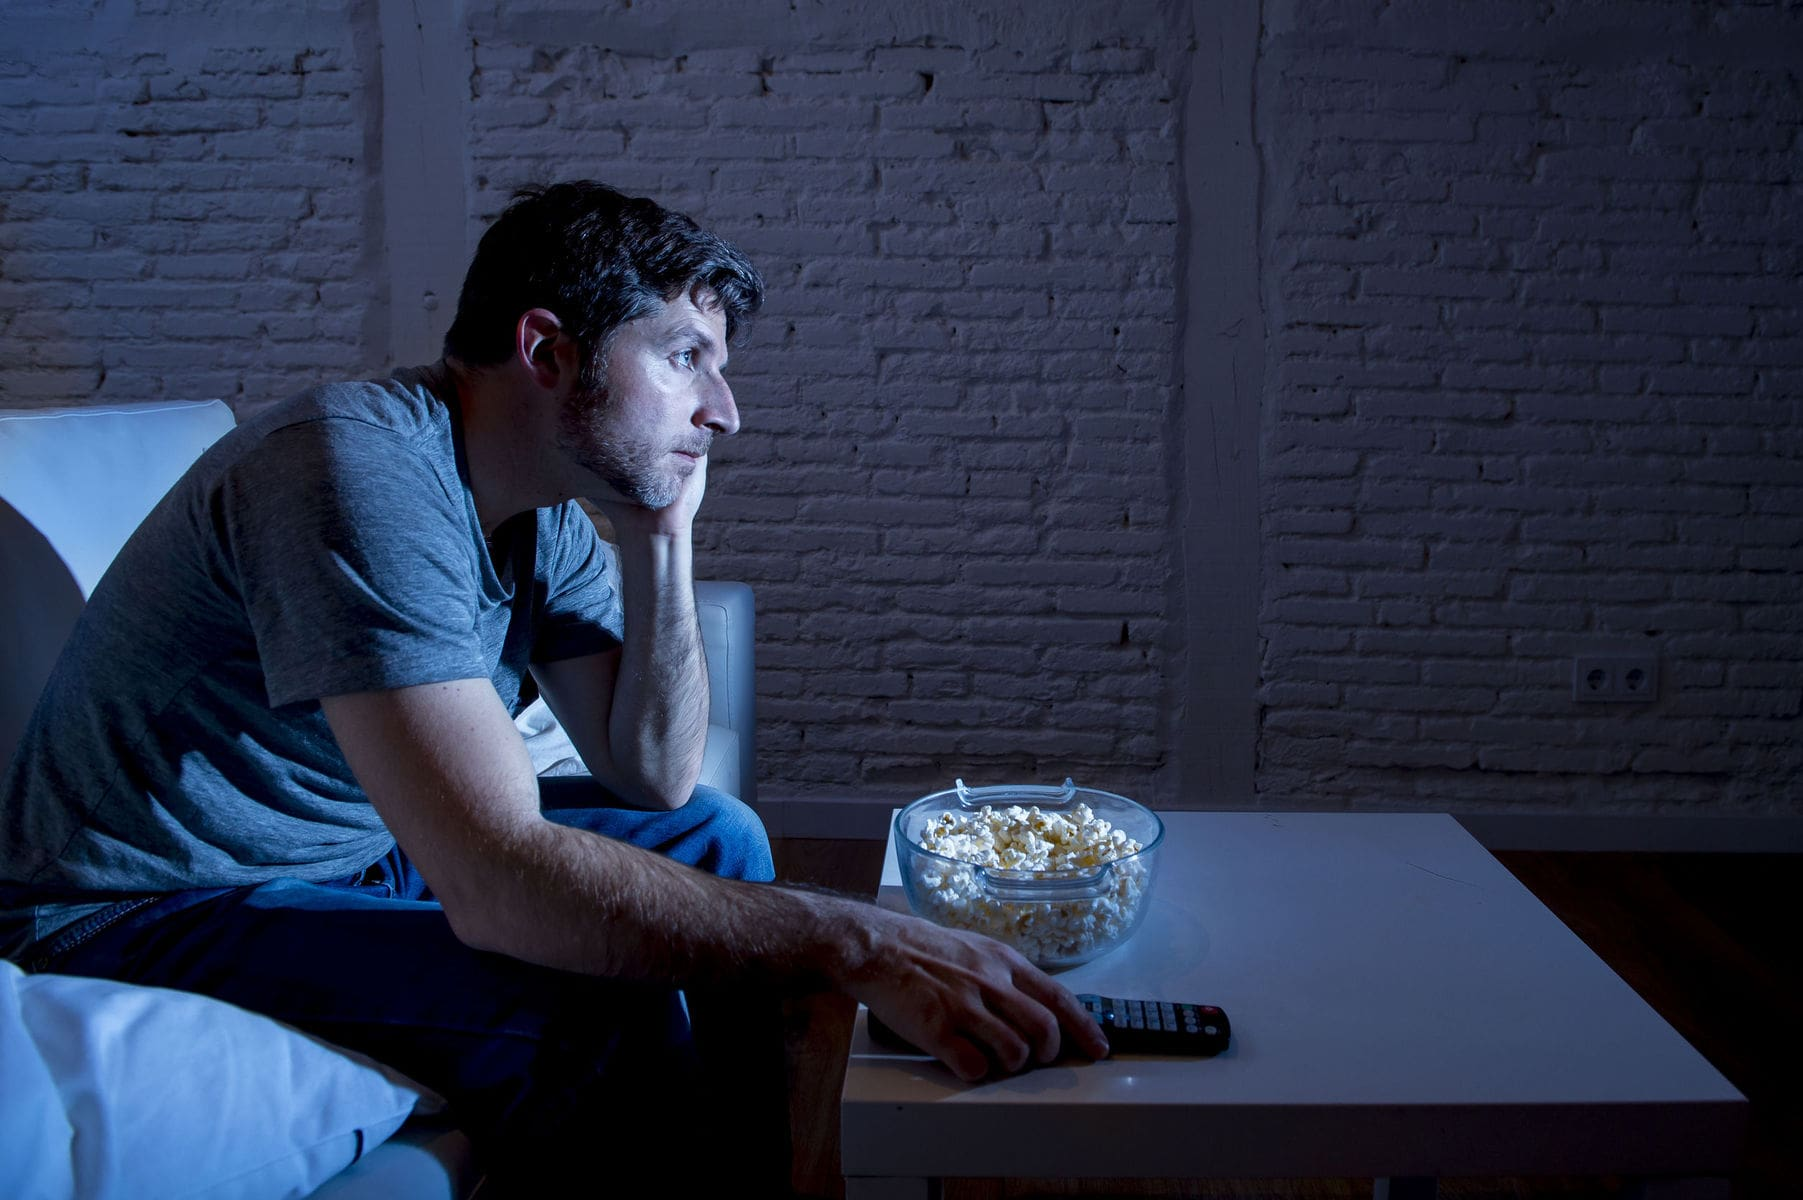 Man isolating himself from friends and family